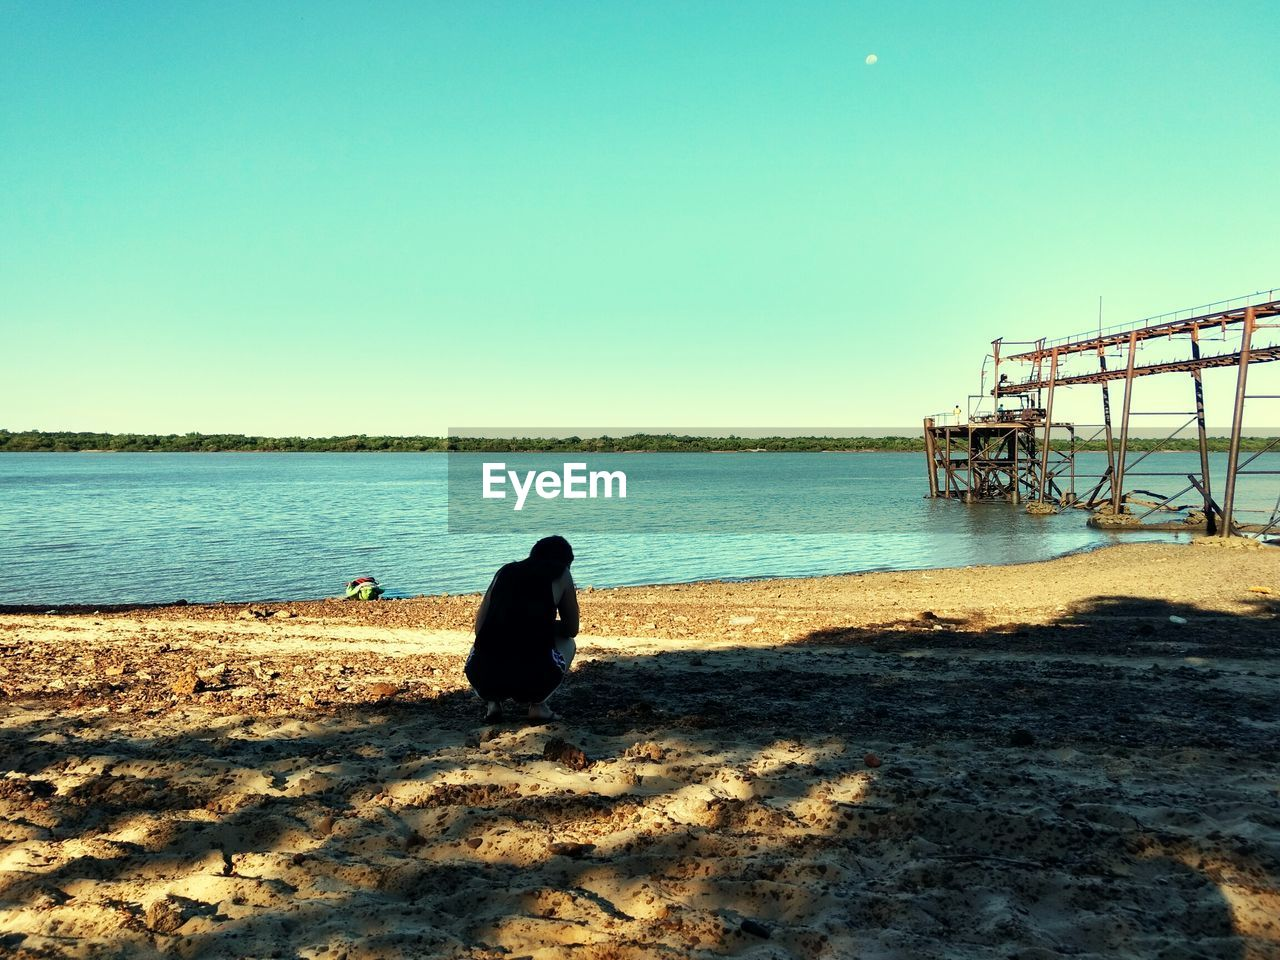 water, sea, clear sky, nature, sunlight, beach, day, outdoors, one animal, animal themes, sky, sand, shadow, beauty in nature, horizon over water, built structure, no people, scenics, bird